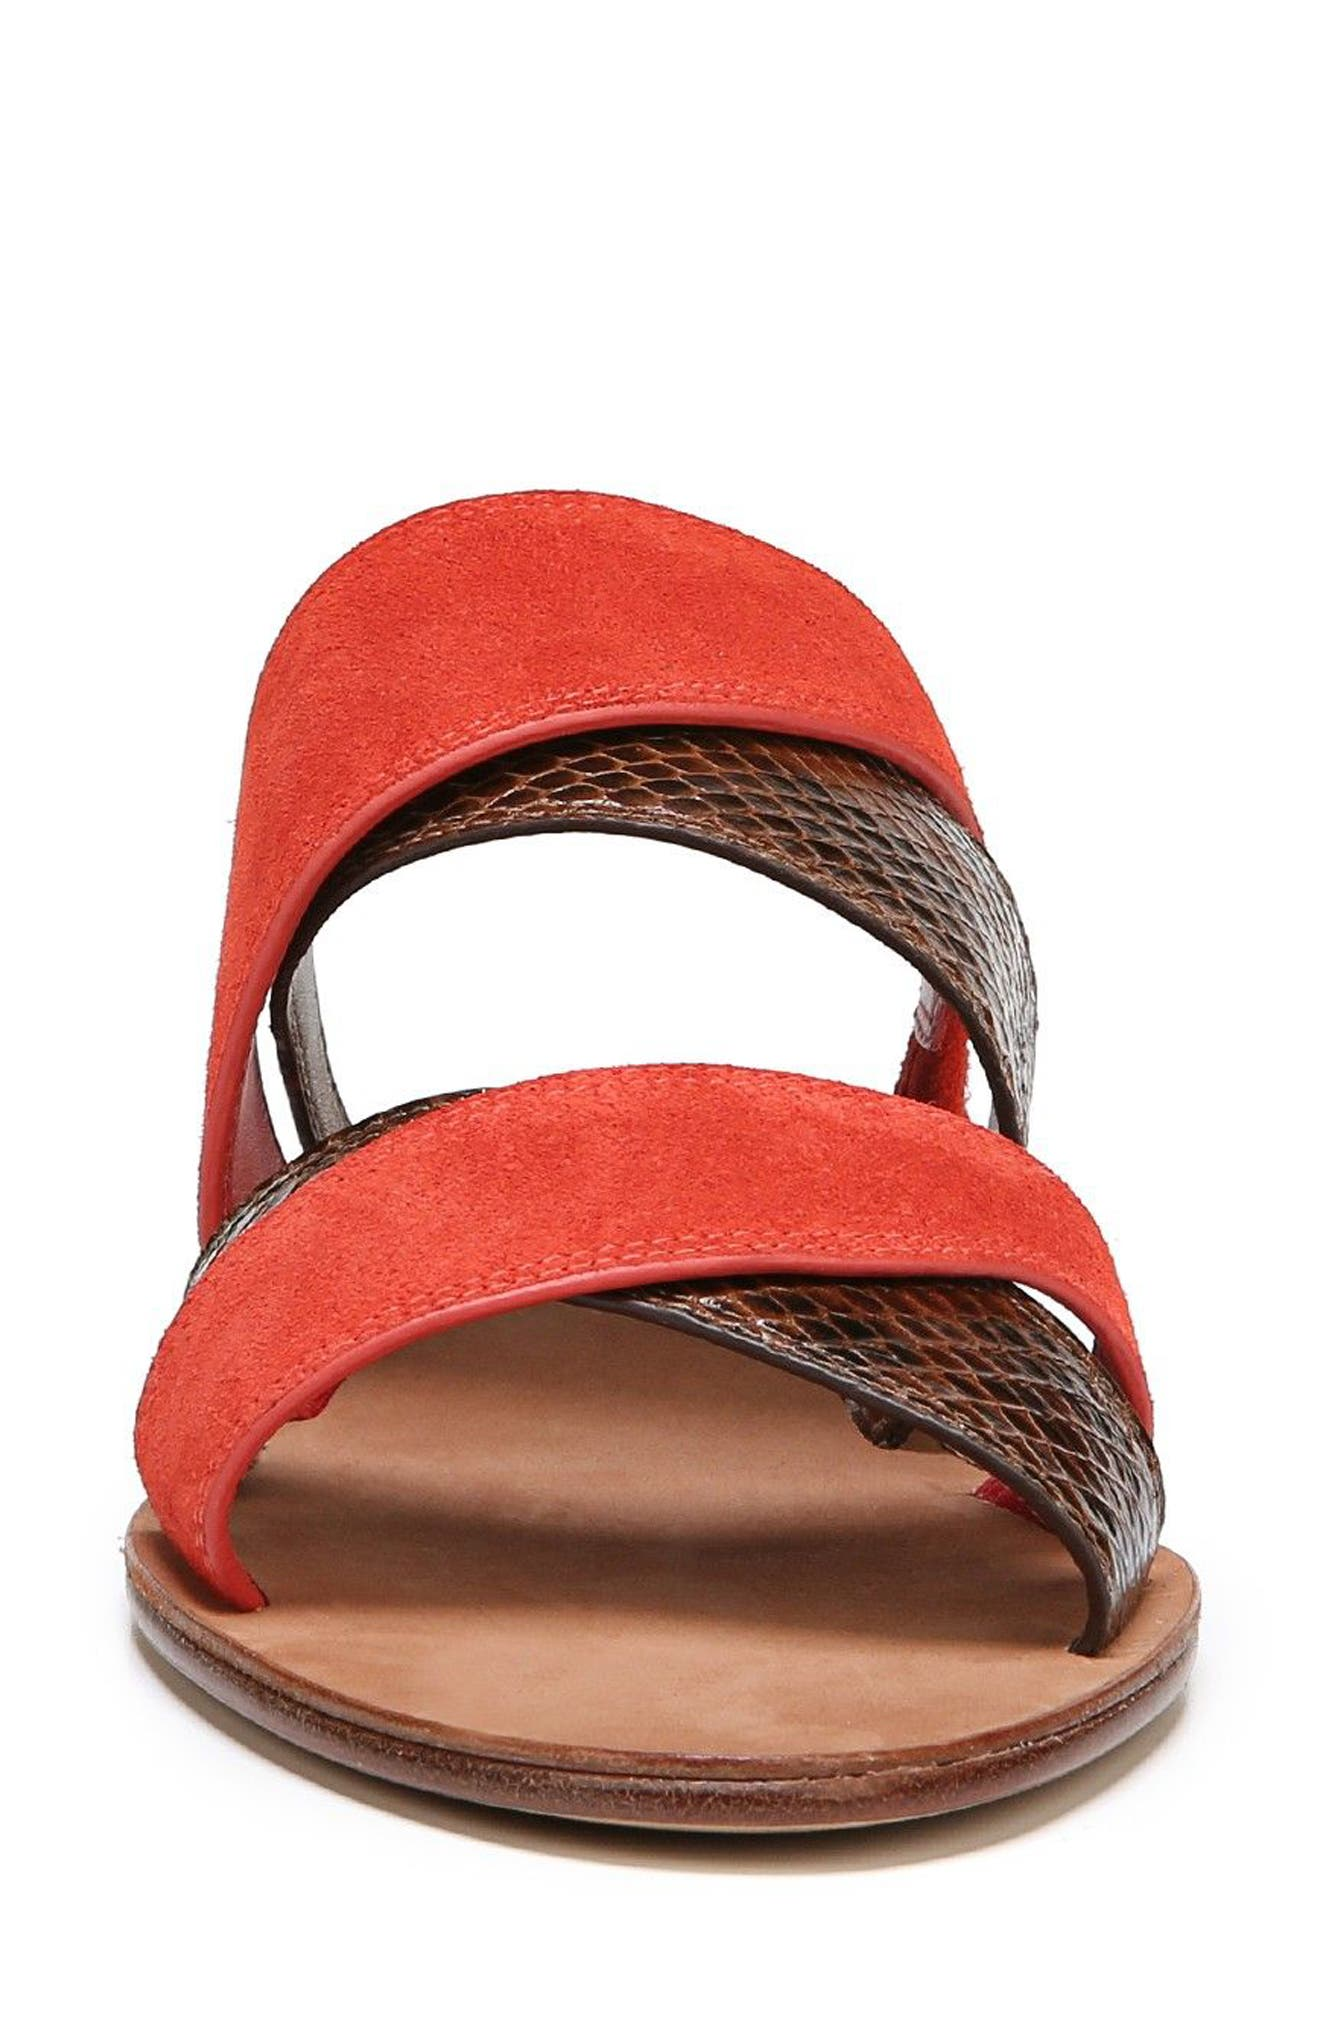 Blake Cross Strap Slide Sandal,                             Alternate thumbnail 8, color,